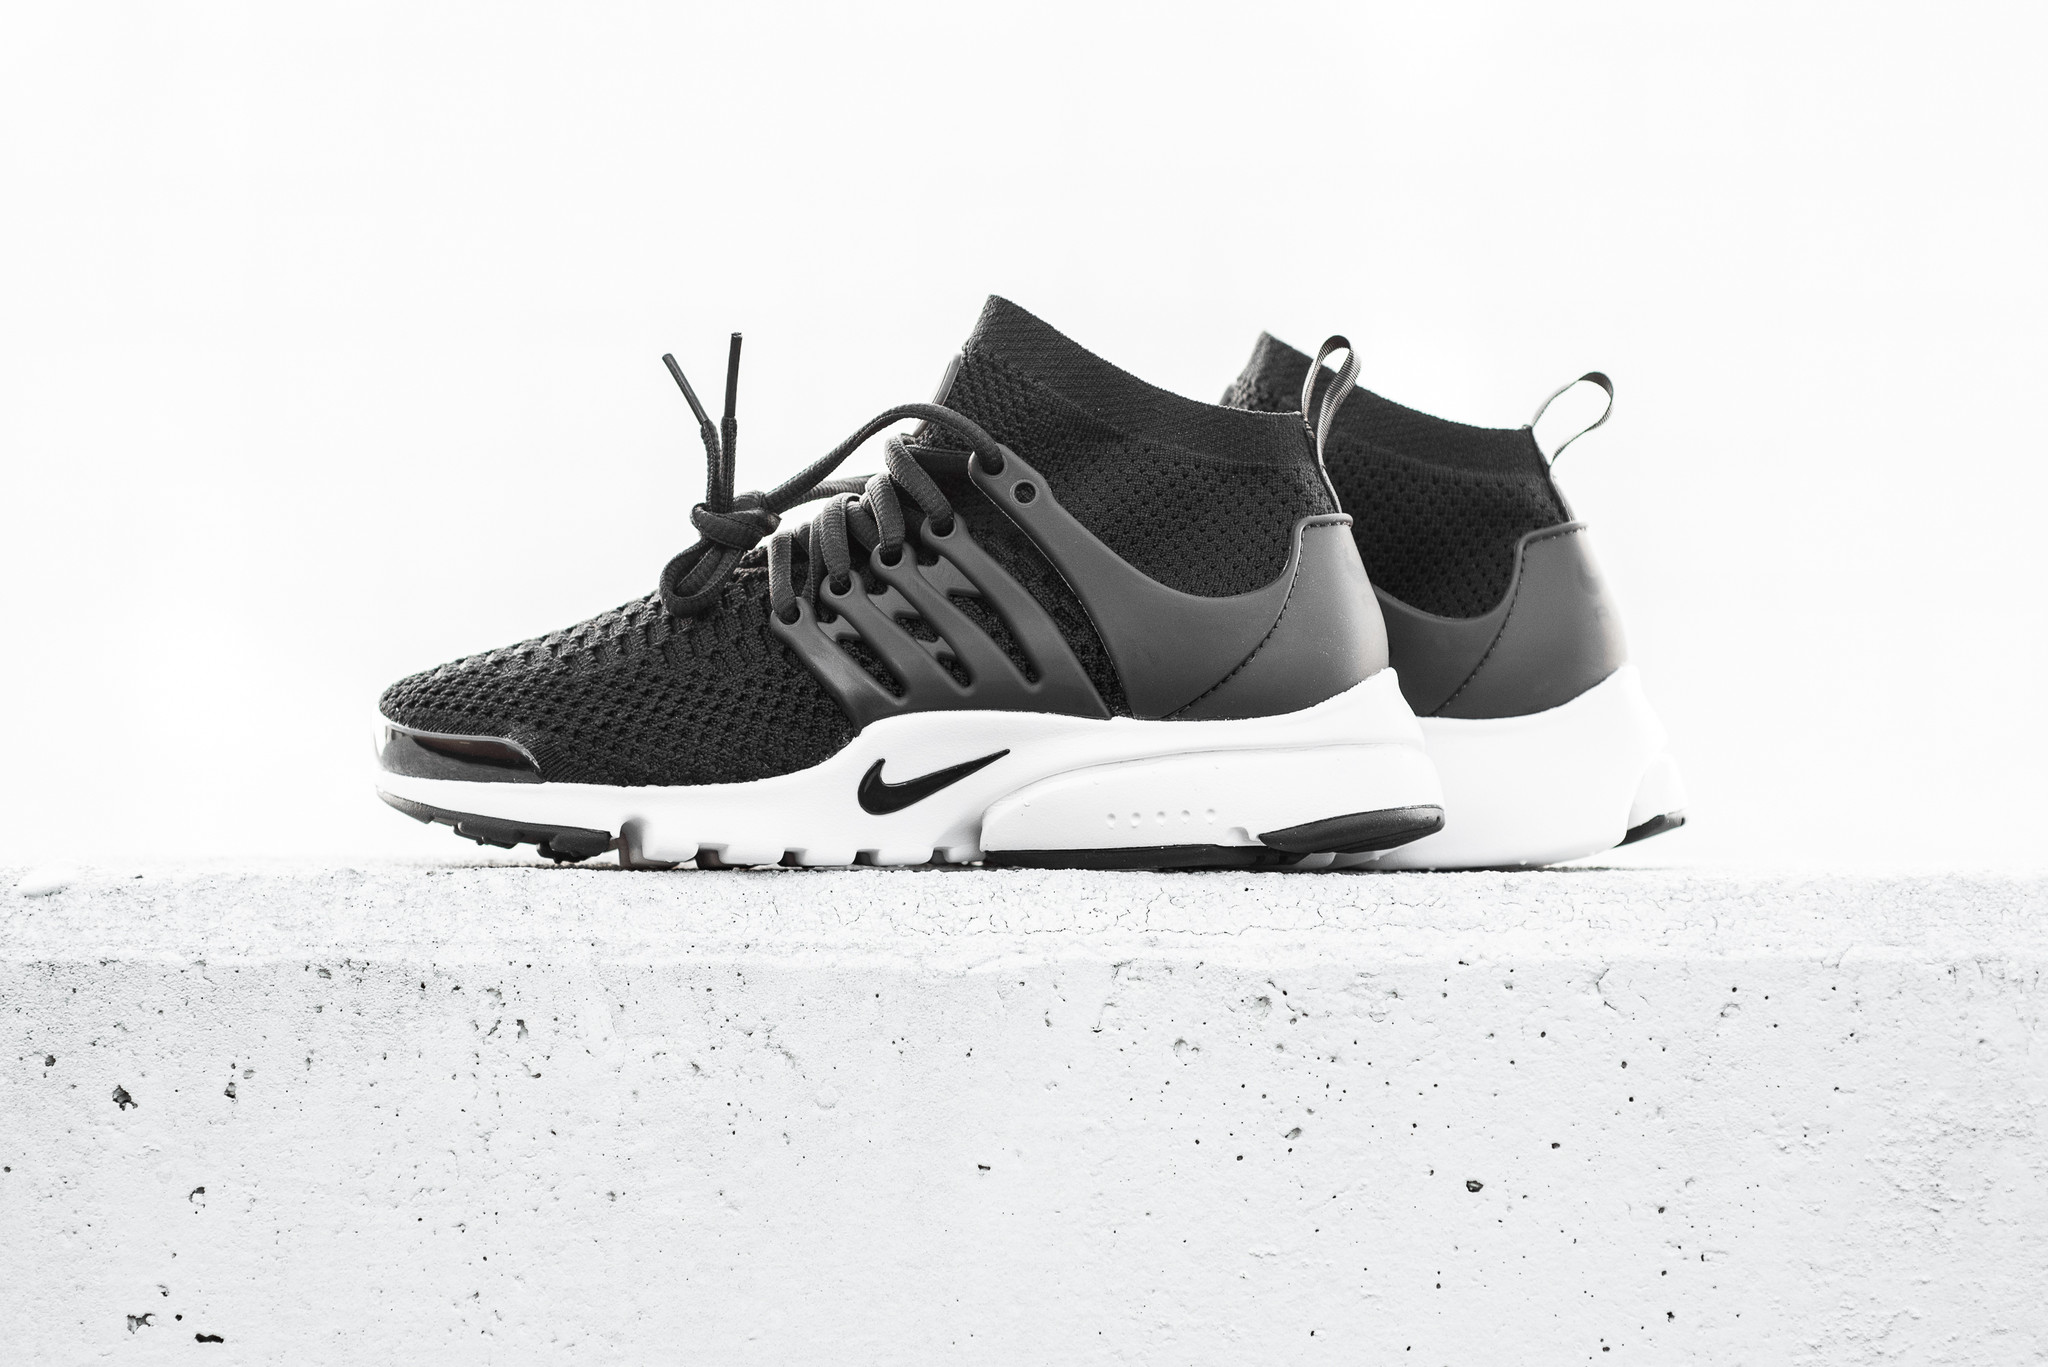 Classic Shades On This Nike Air Presto Ultra Flyknit For Women ...